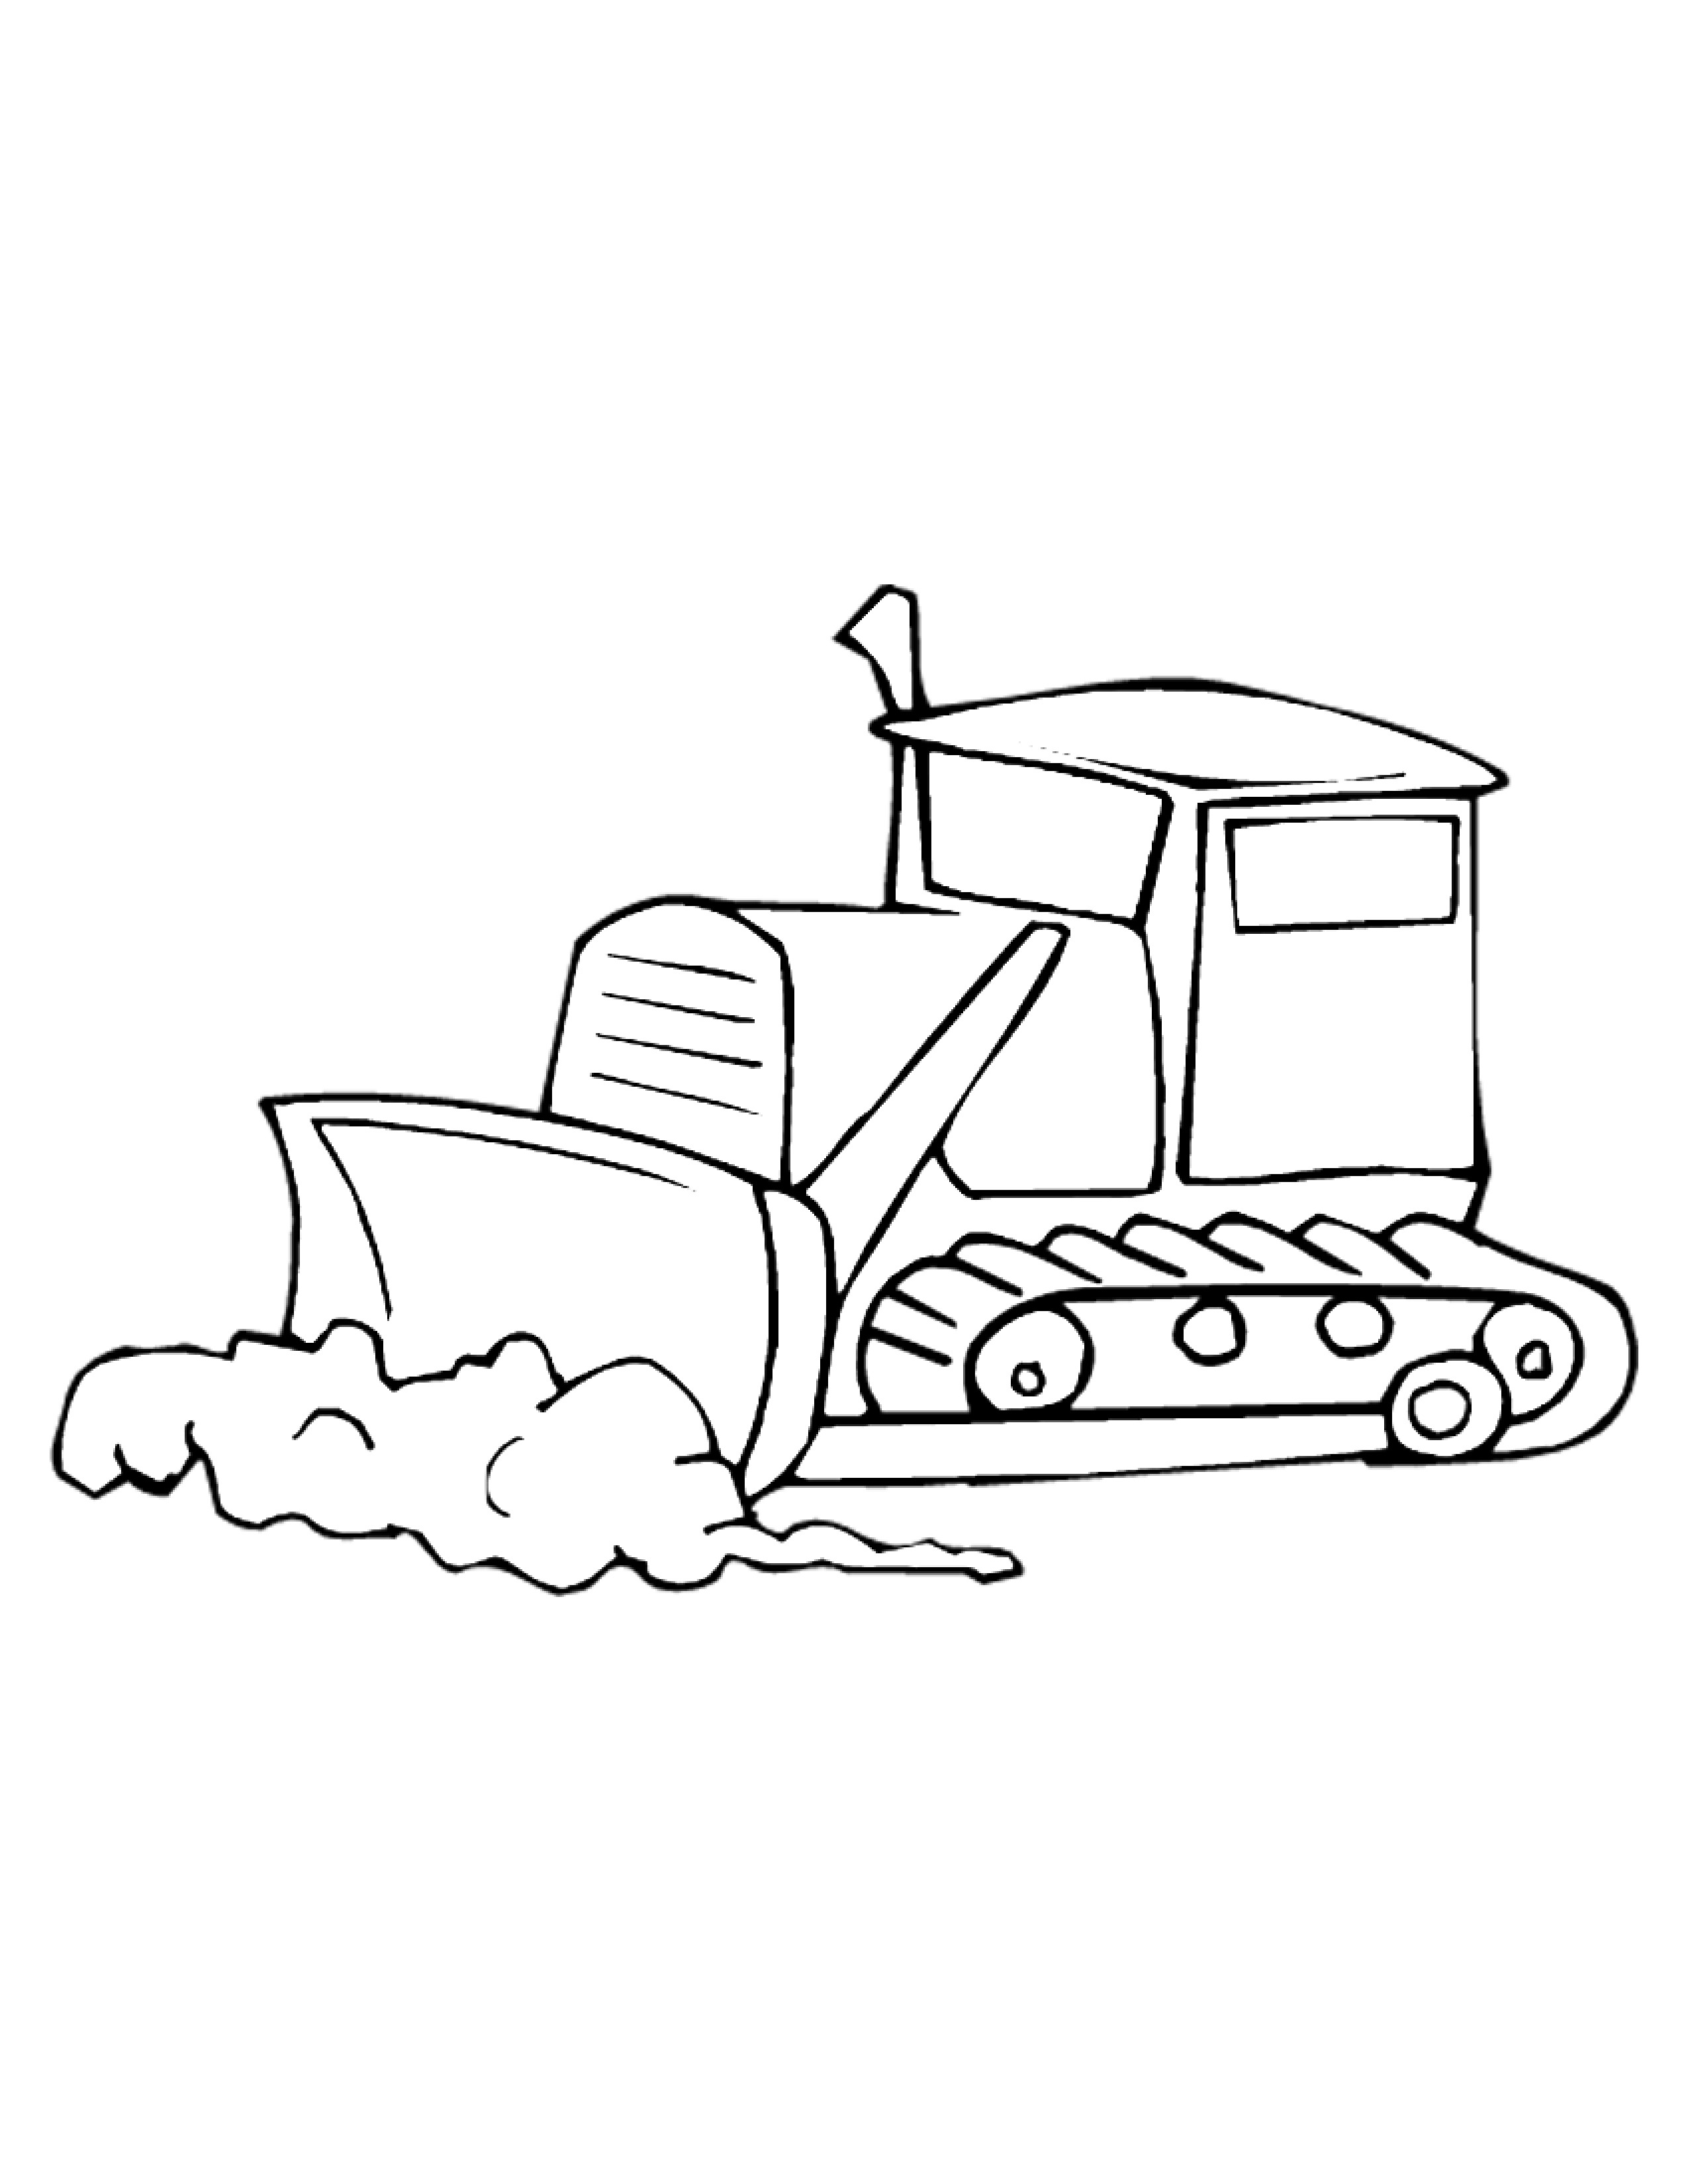 Construction Equipment Coloring Pages At Getcolorings